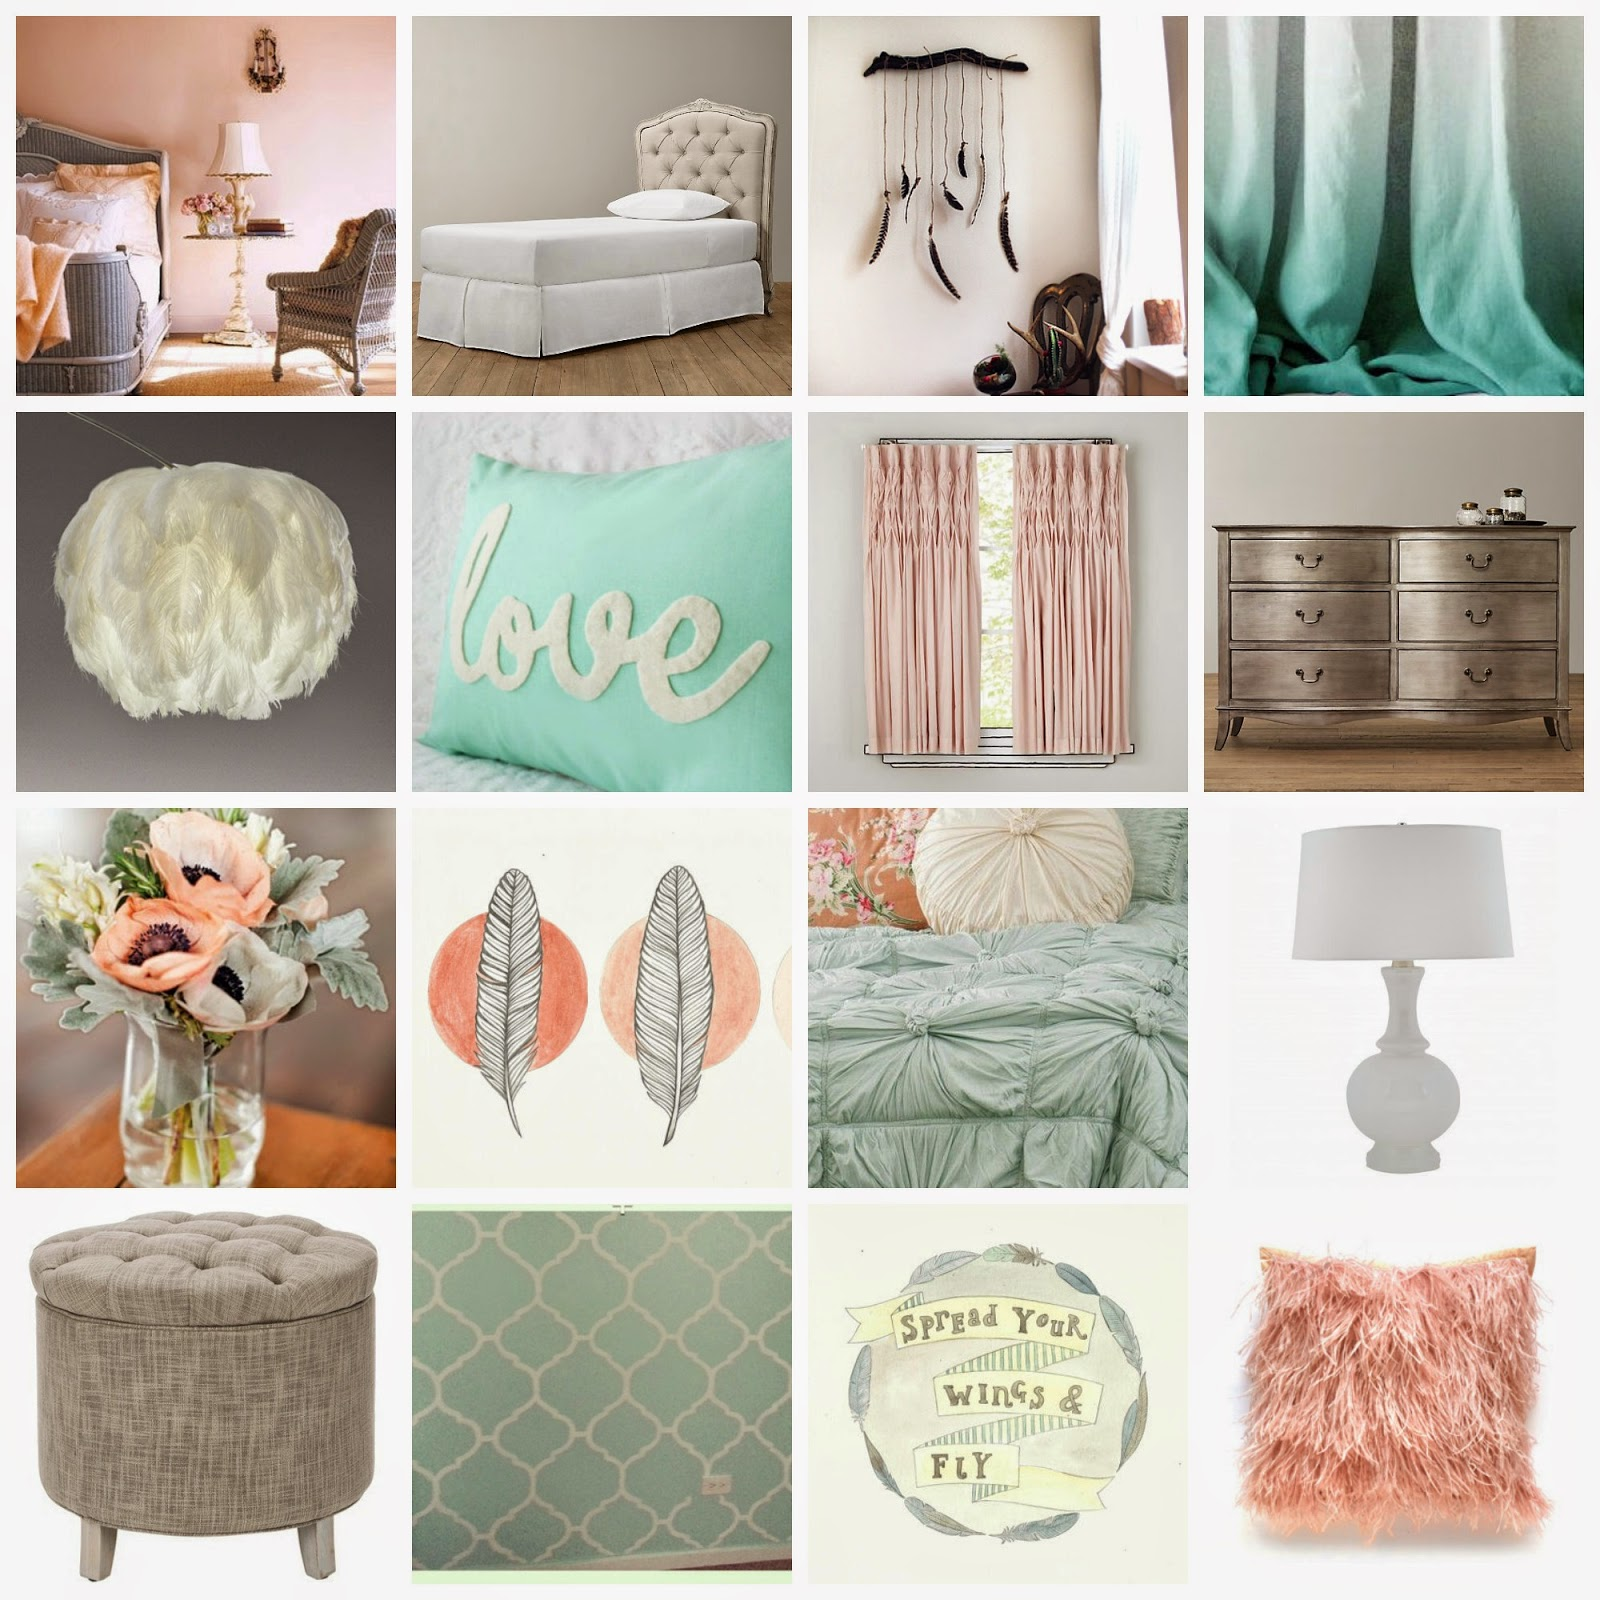 Mint Green Bedrooms For Girls Bedroom Curtains 2016 Eclectic Bedroom Furniture Bedroom Design With Bathroom: My Renovated Life: I'm Not A Girl